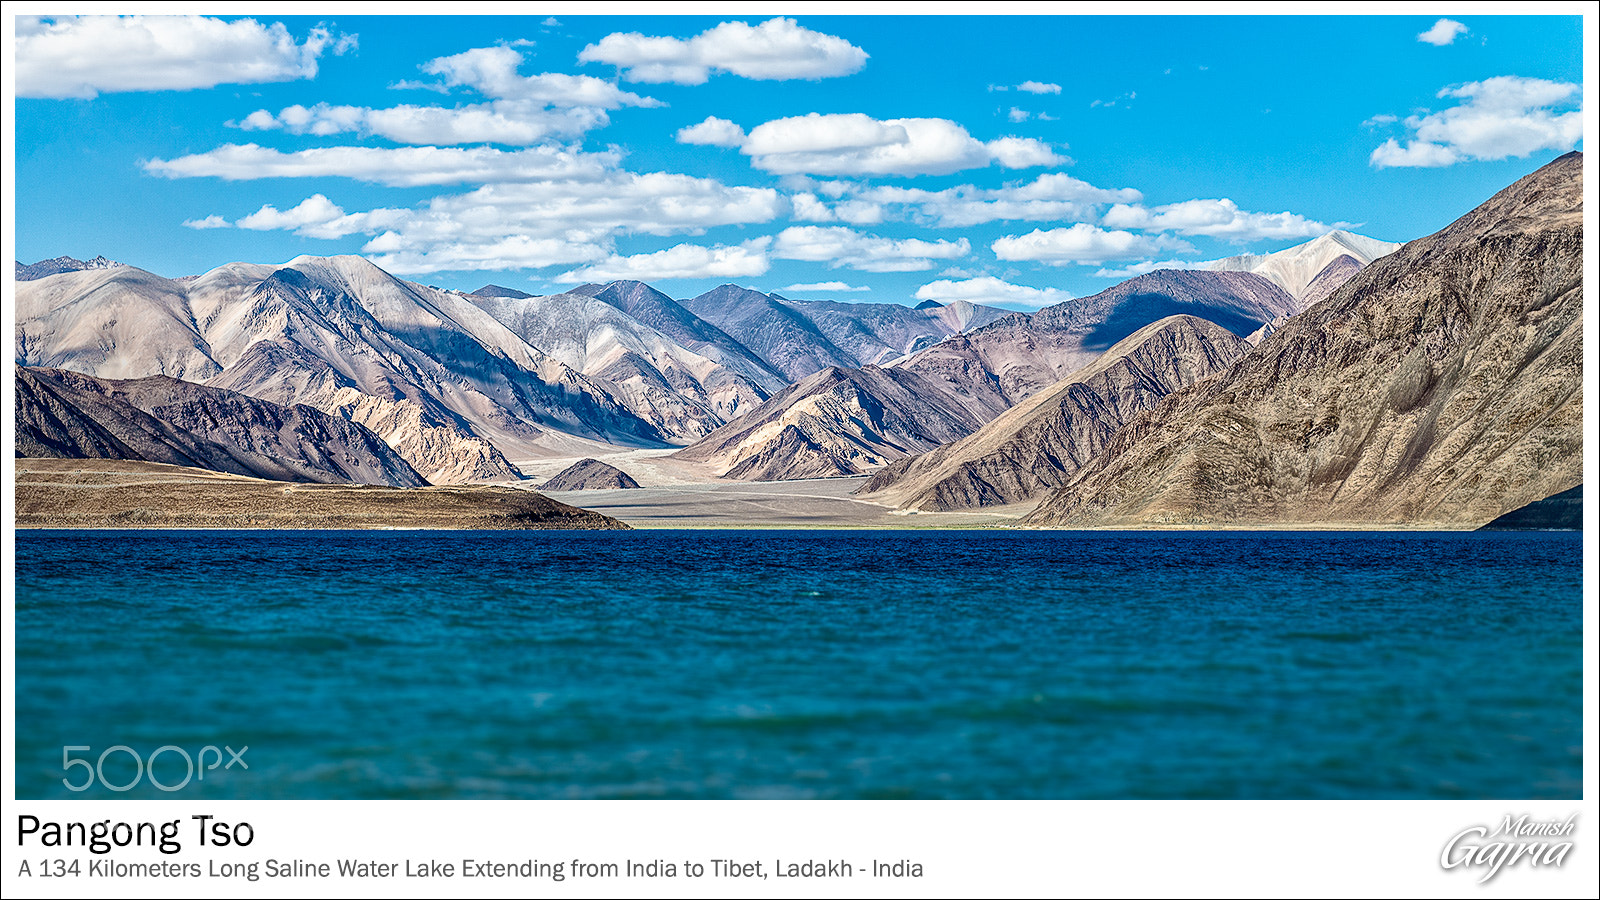 Photograph Pangong Tso by Manish Gajria on 500px